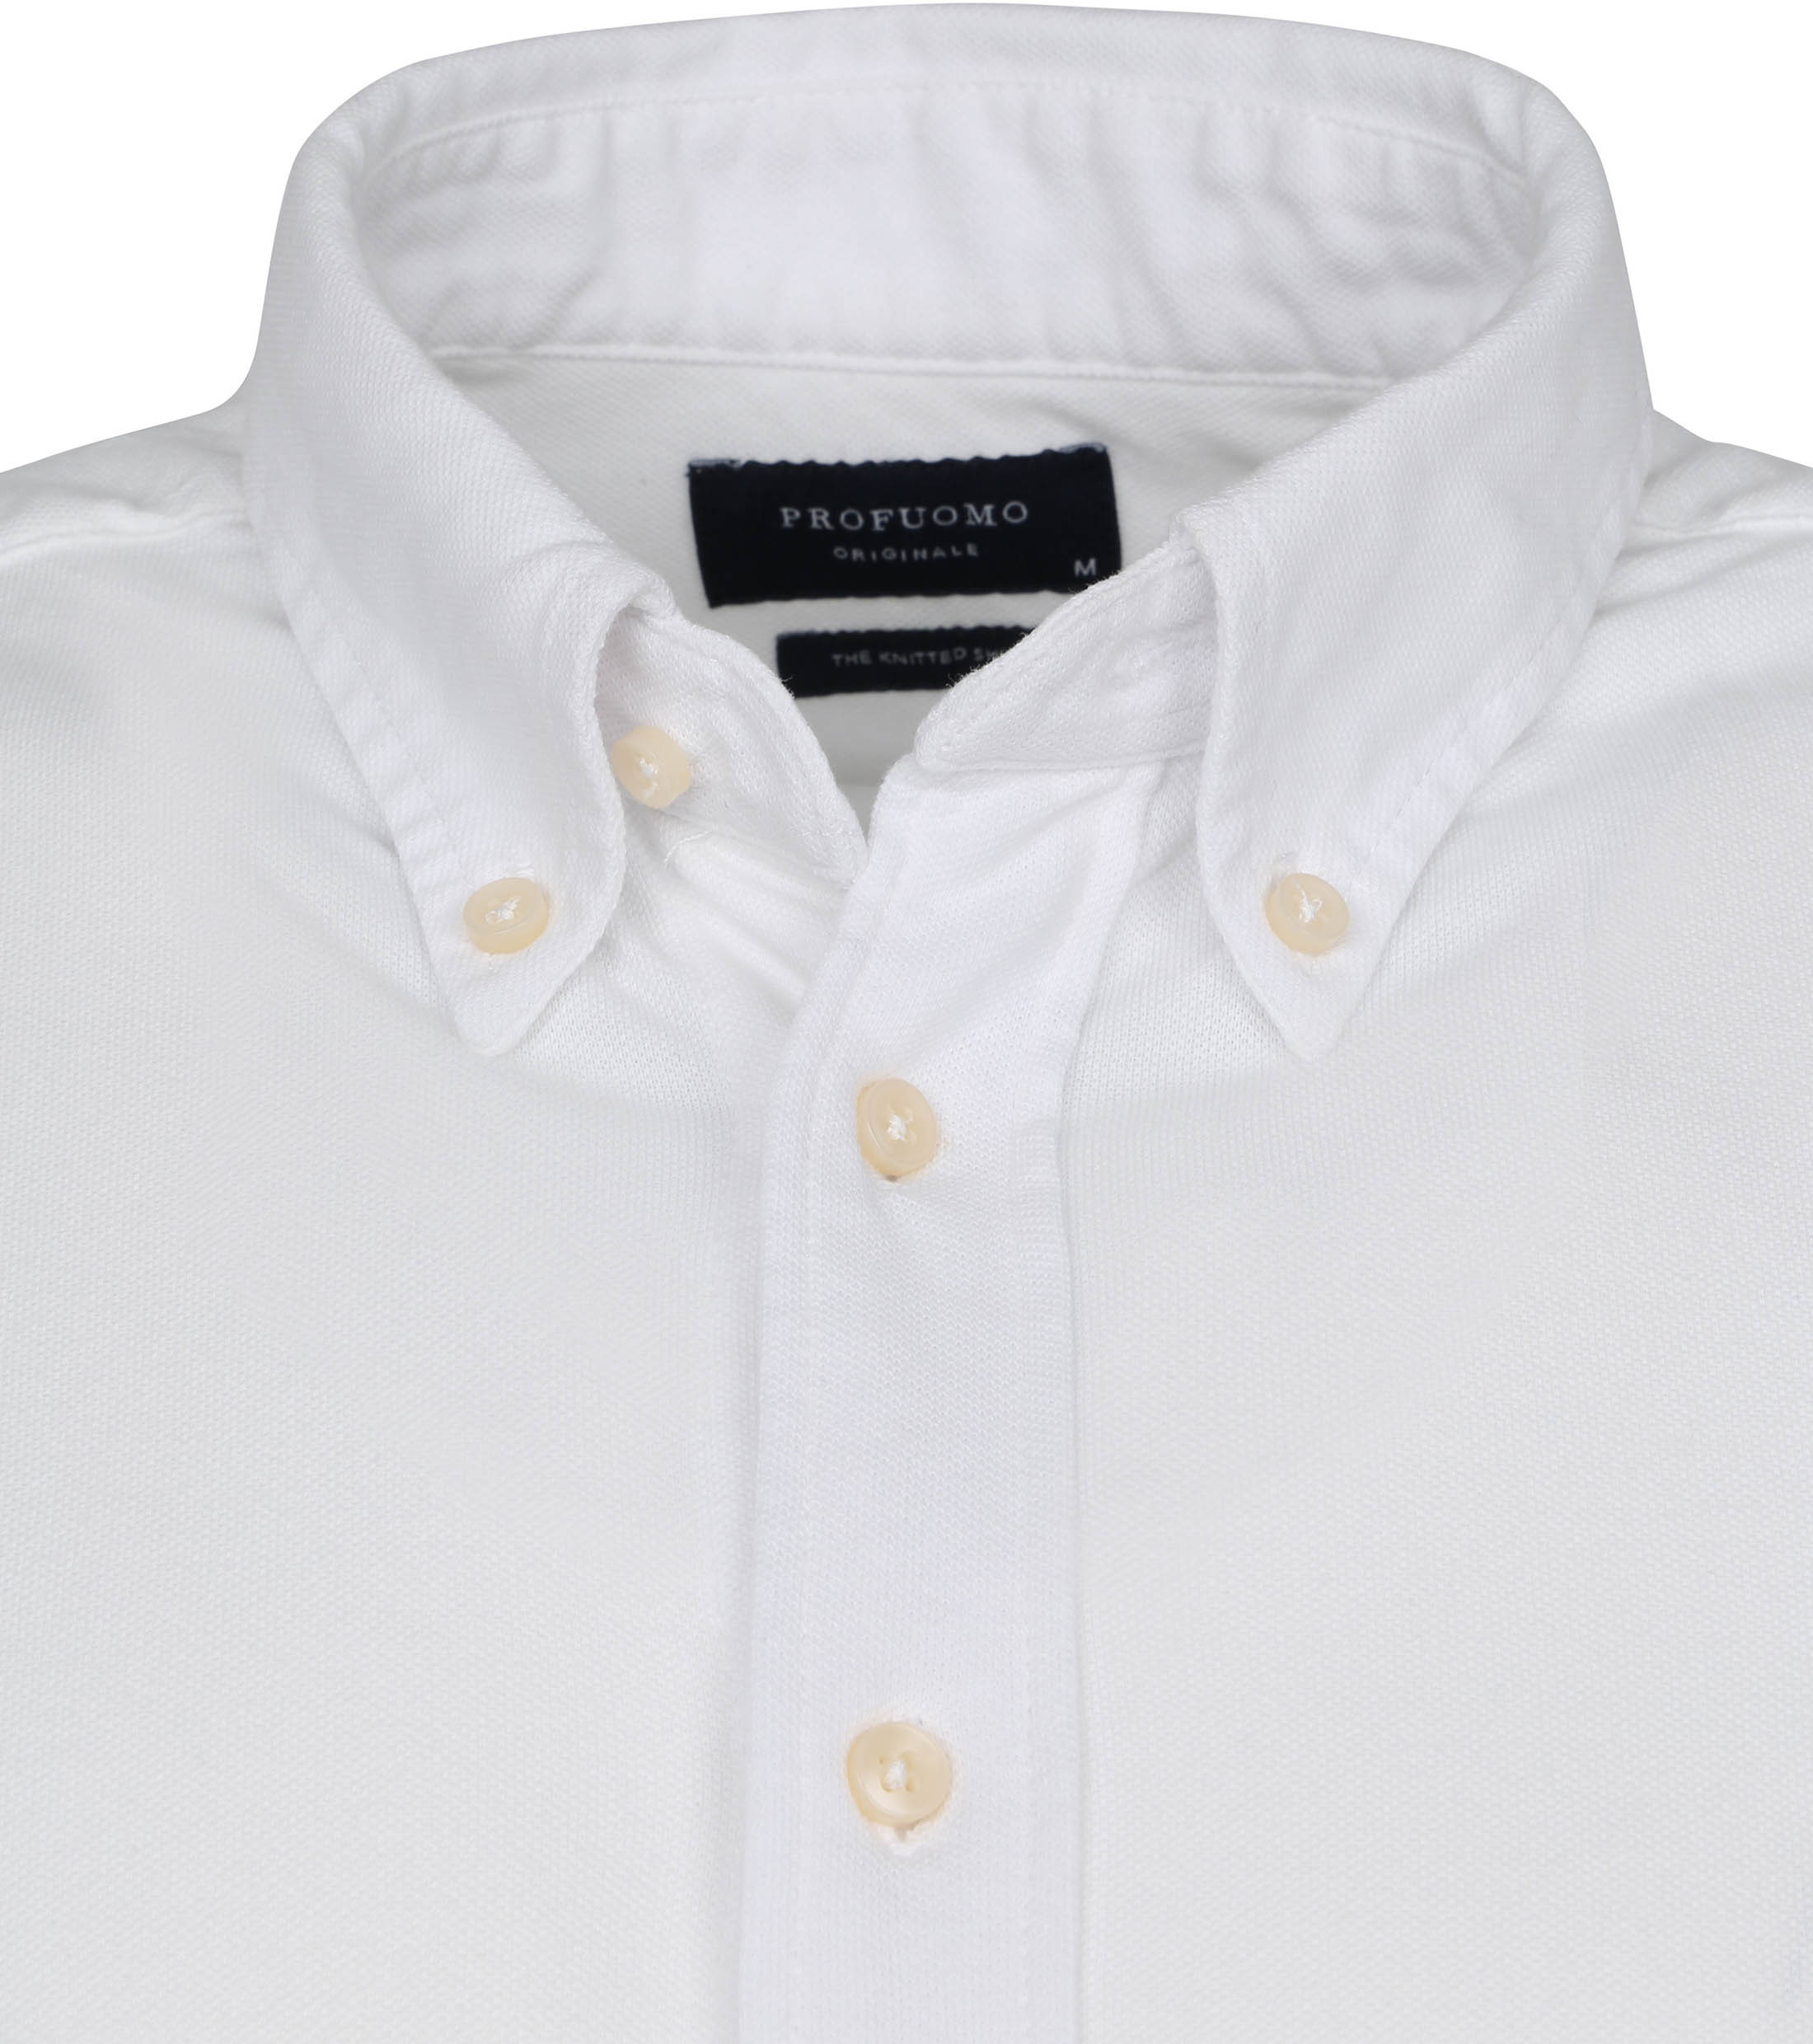 Profuomo Overhemd Garment Dyed Button Down Wit